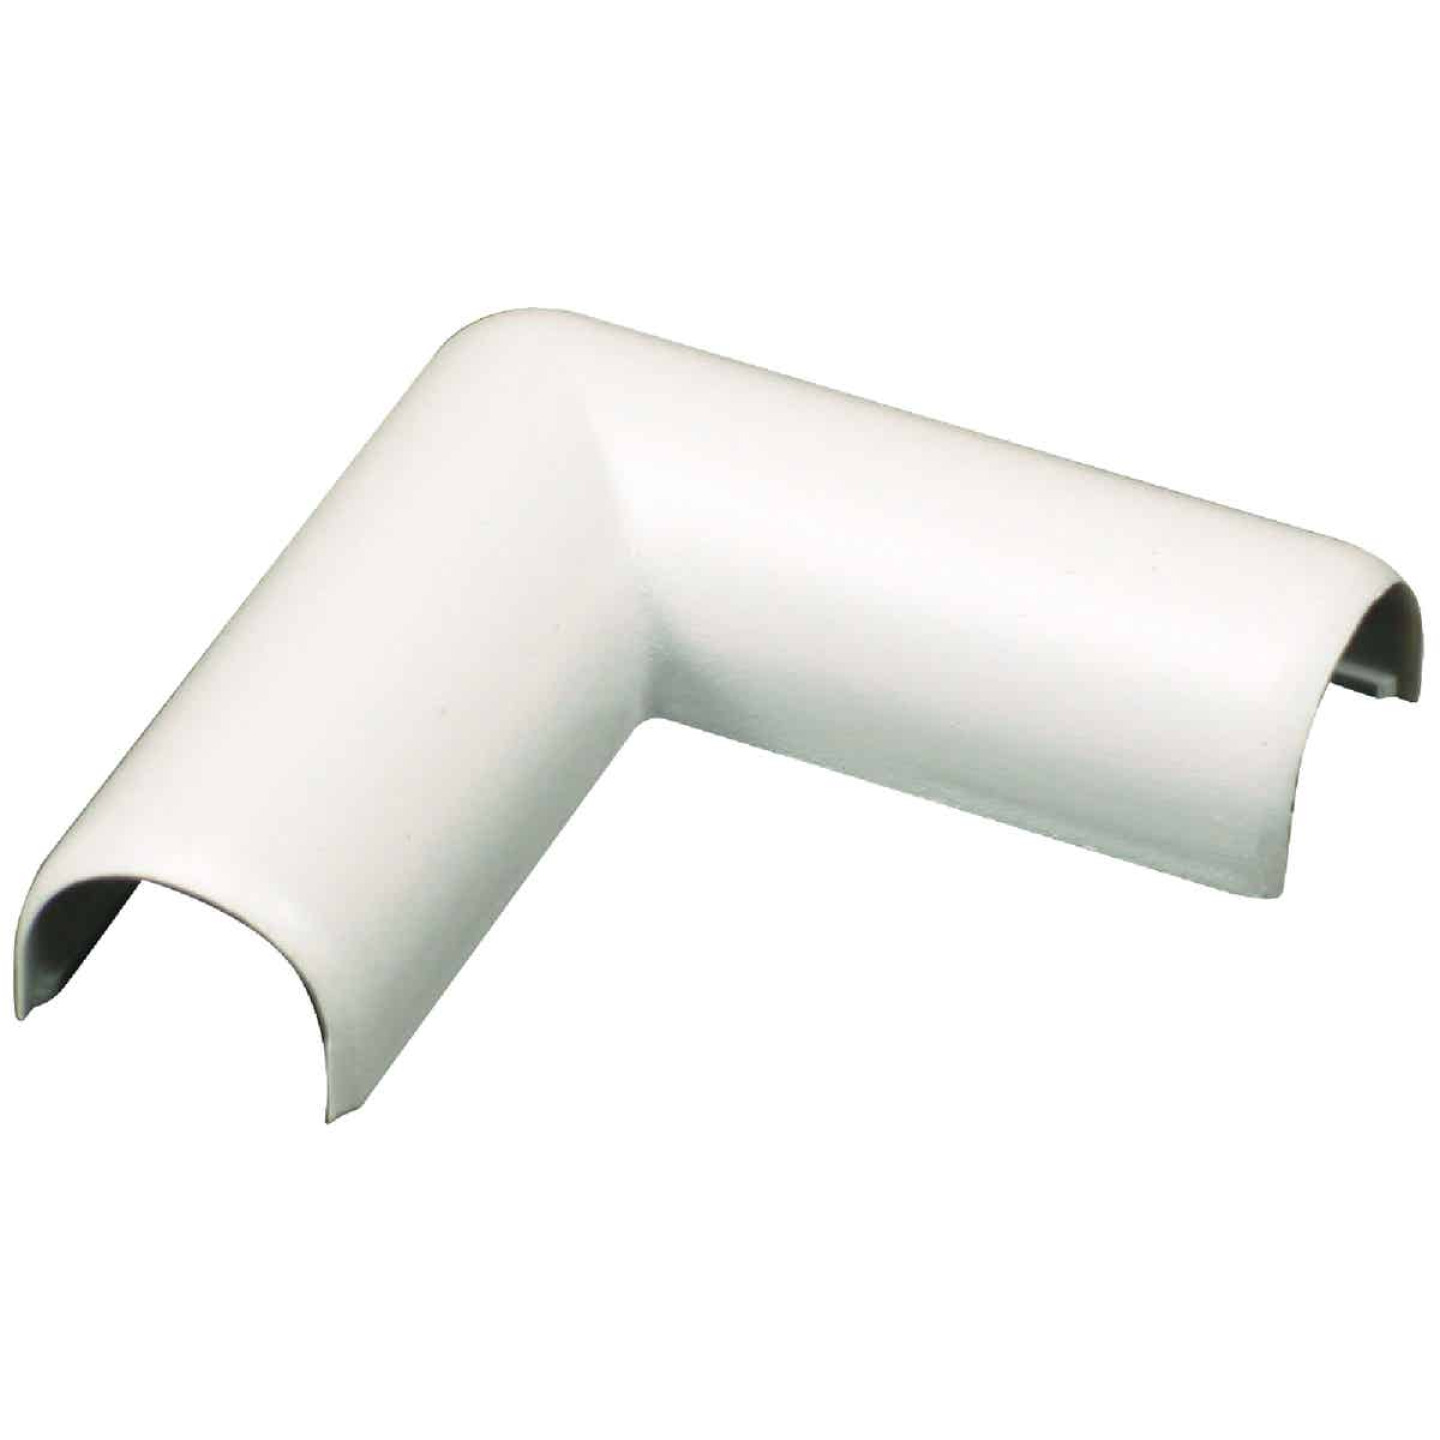 Wiremold White 90 Deg Flat Elbow Image 1